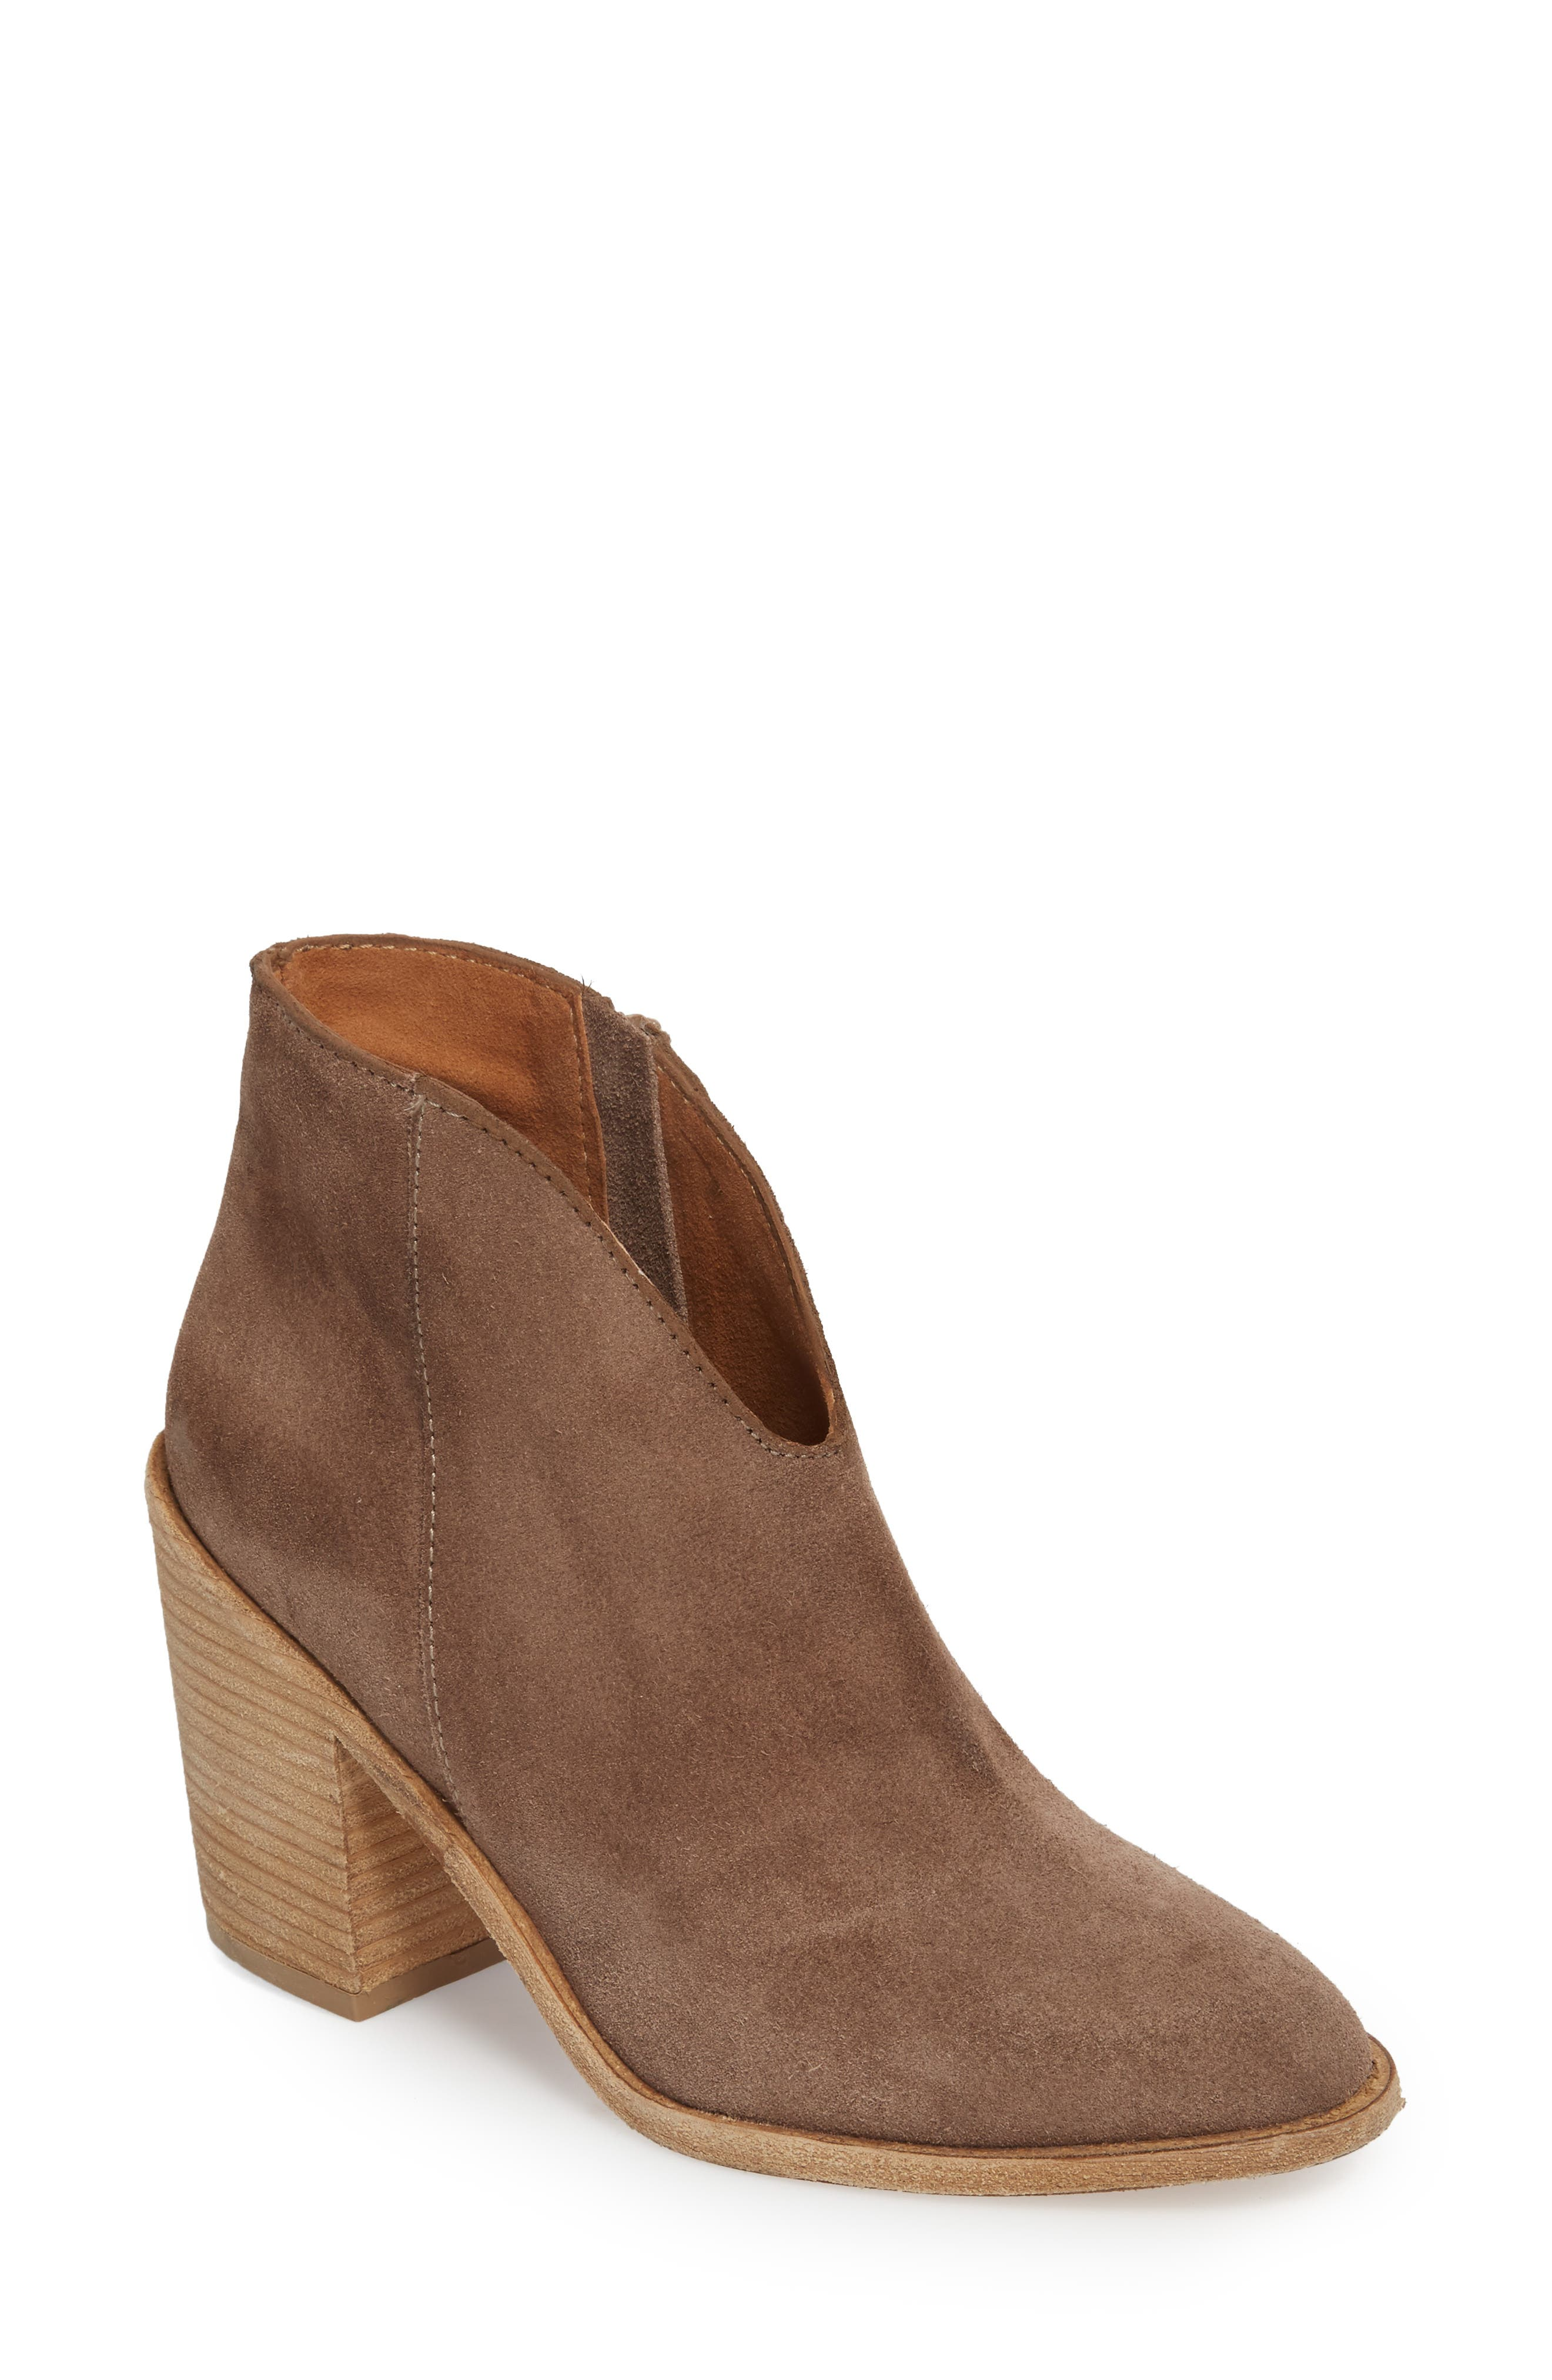 Kamet Bootie,                         Main,                         color, Taupe Oiled Suede